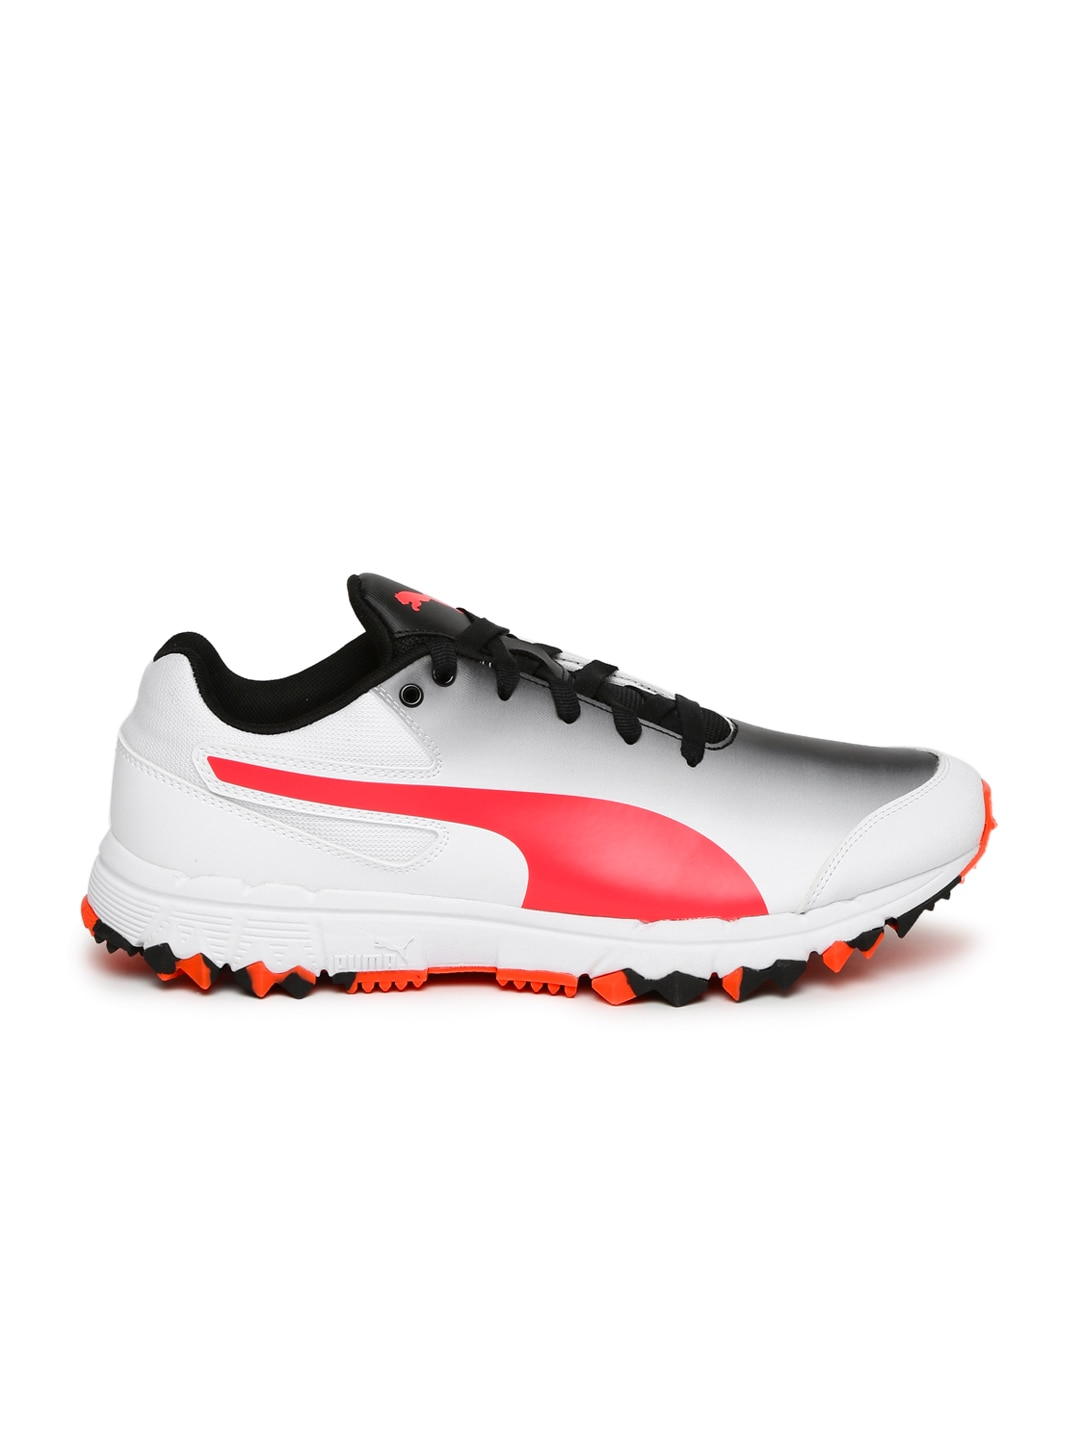 jabong puma shoes